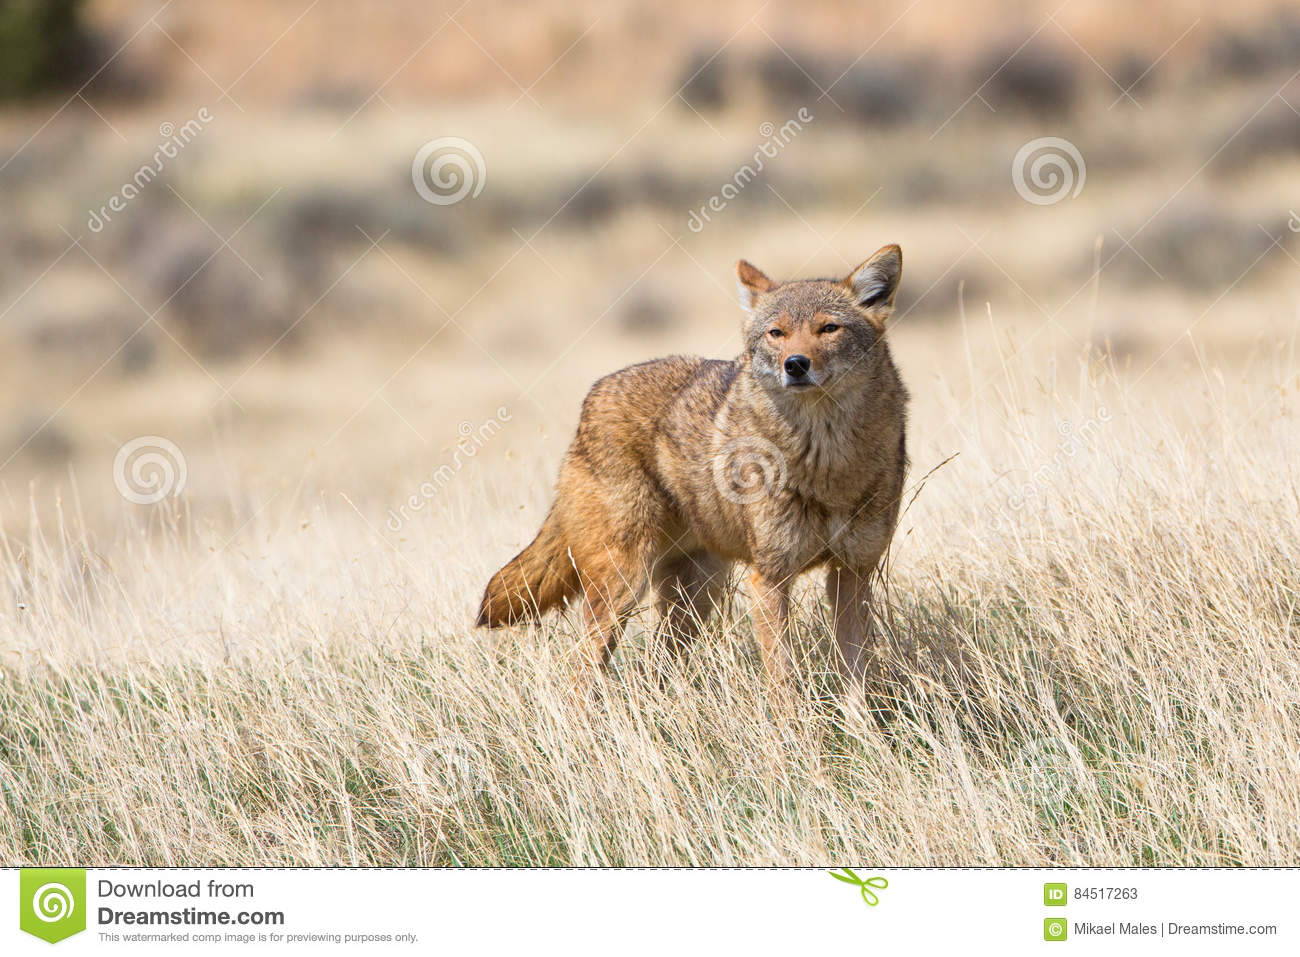 Coyote in search of food